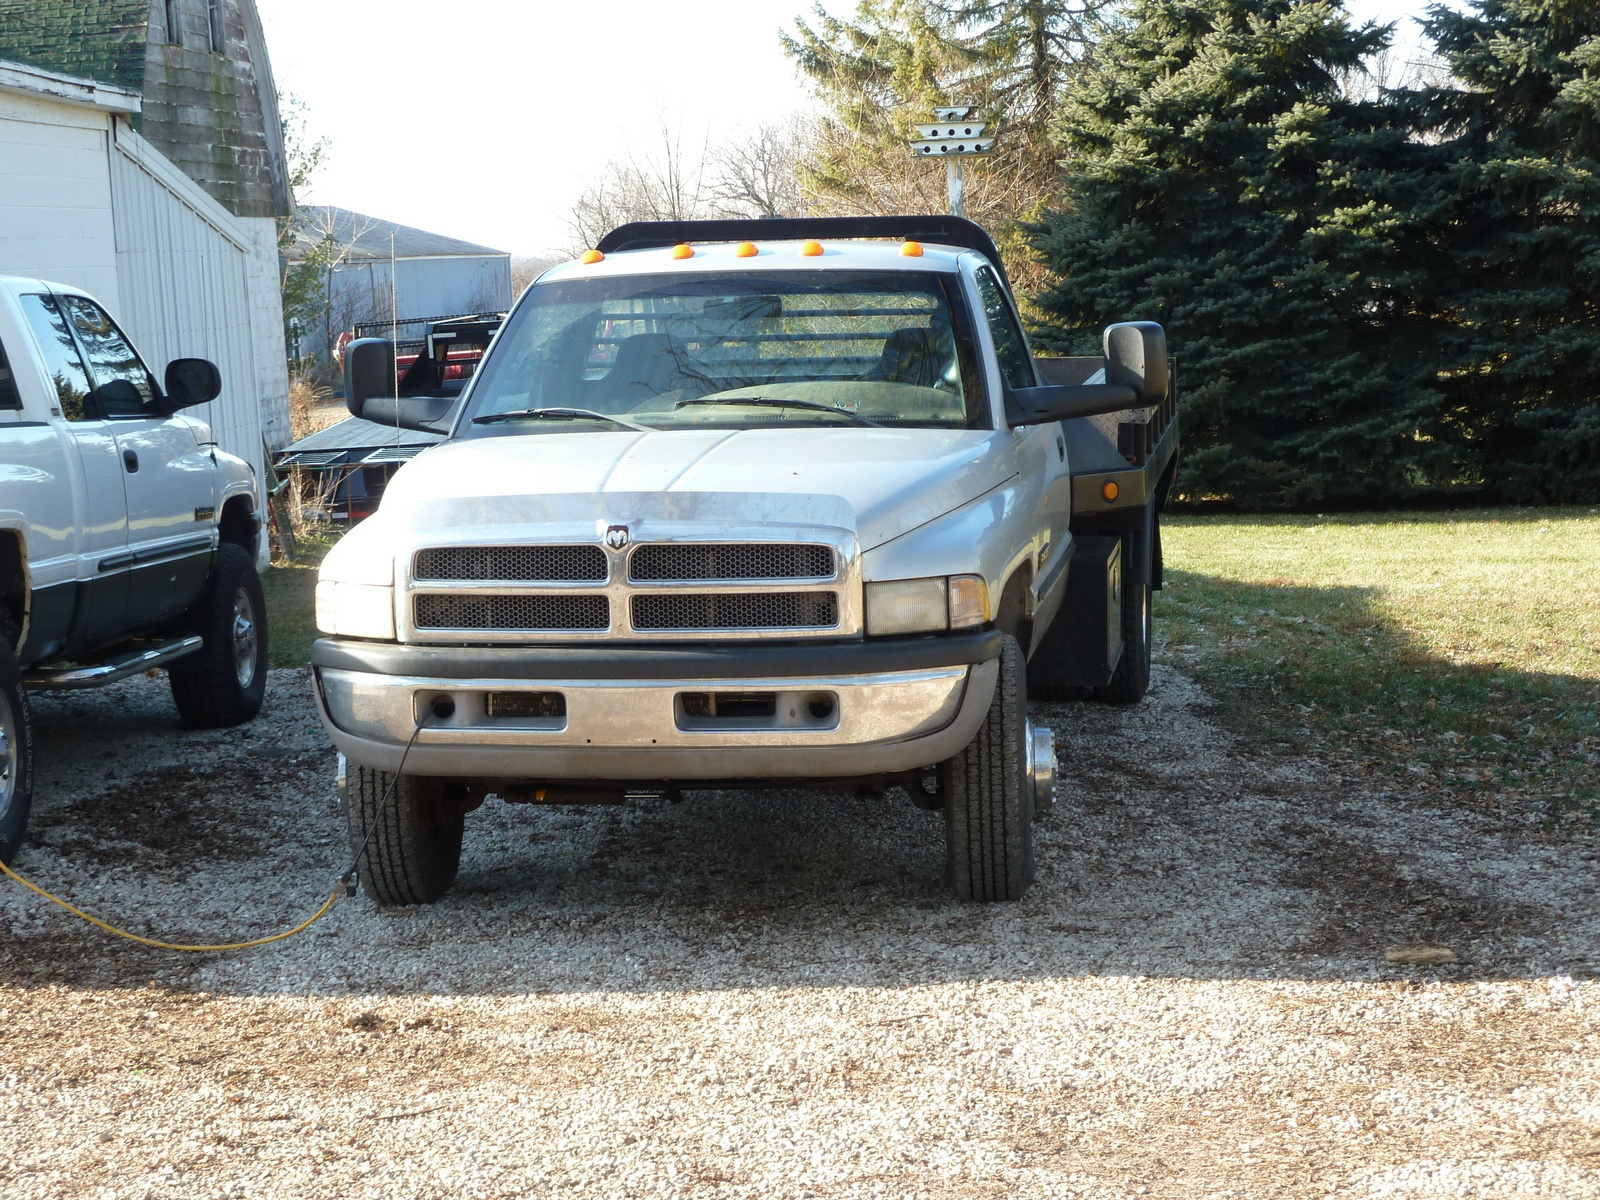 2013 3500 Ram Dually For Sale In Illinois | Autos Post